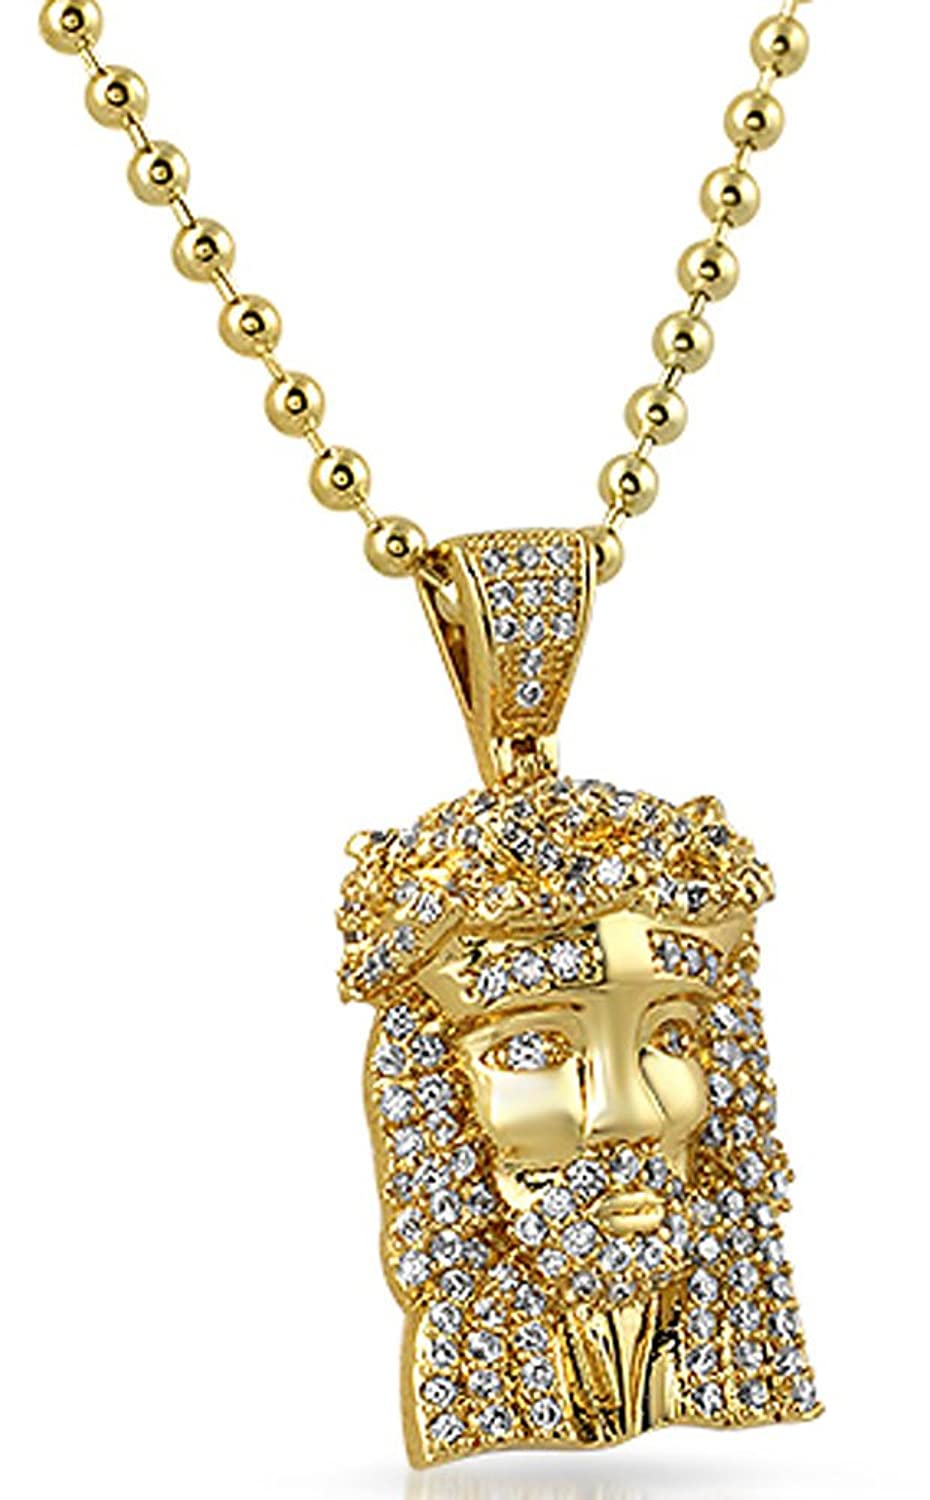 nano products gonin in piece jesus necklace chain bijouterie pendant tumblr gold with